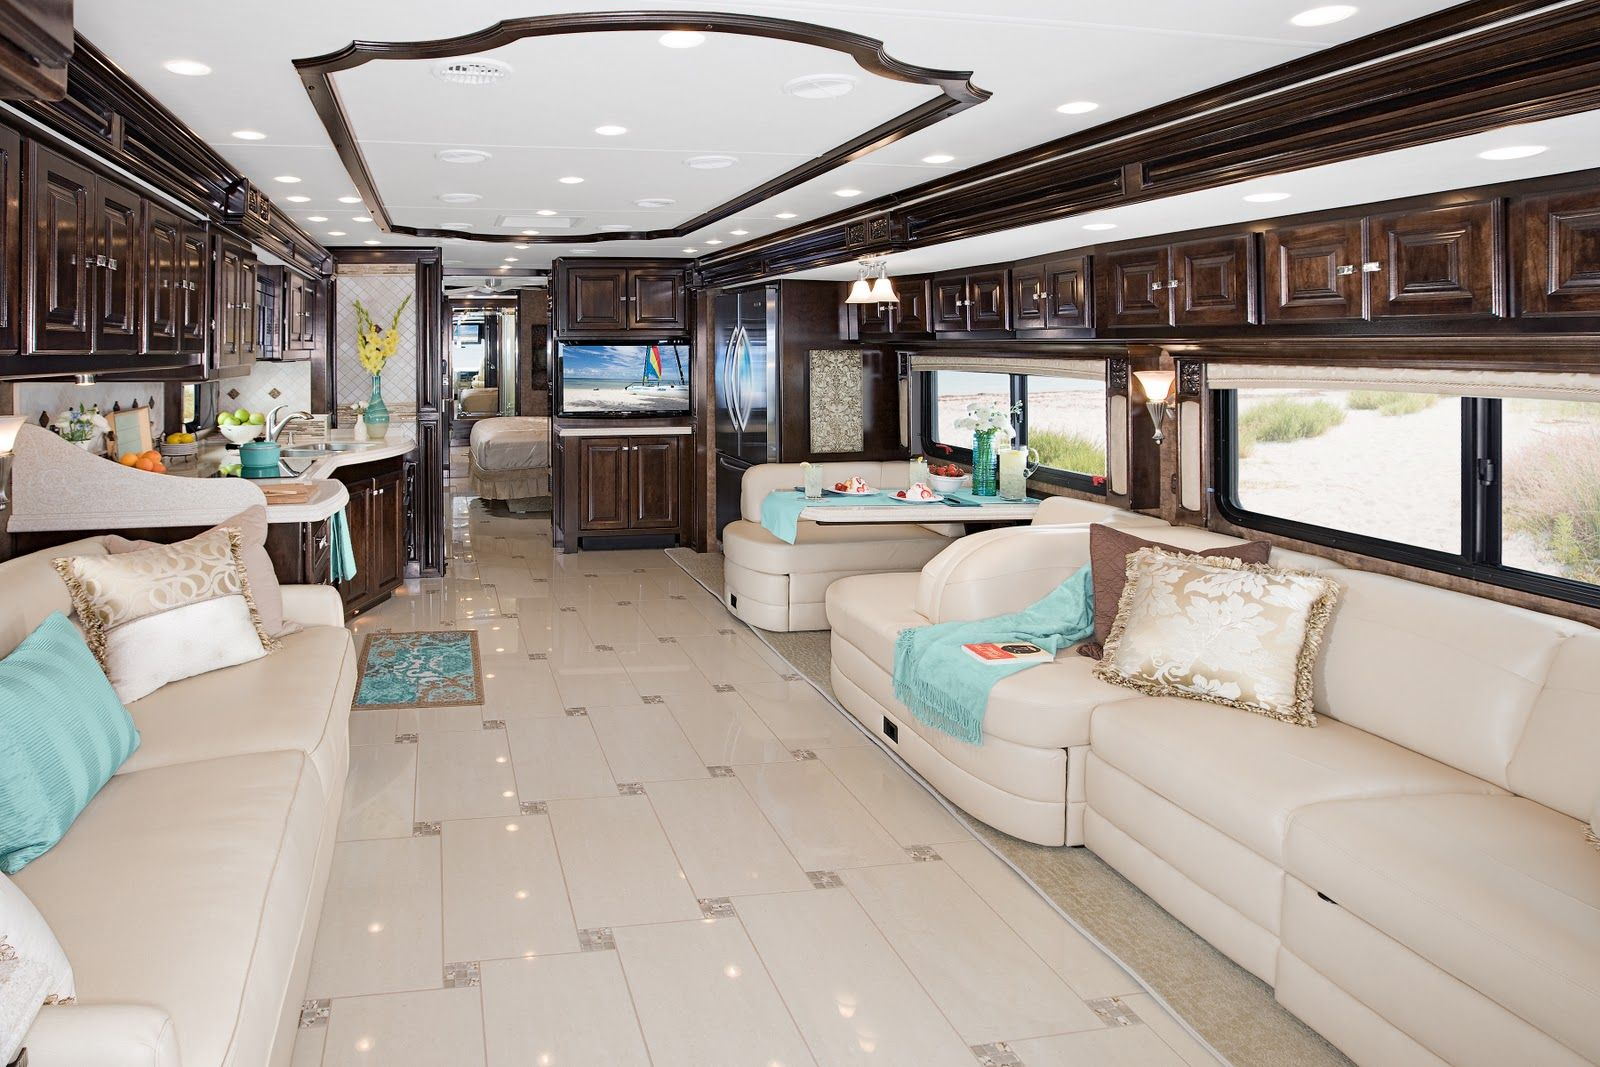 Experience Life How To RV The Class A Motorhome